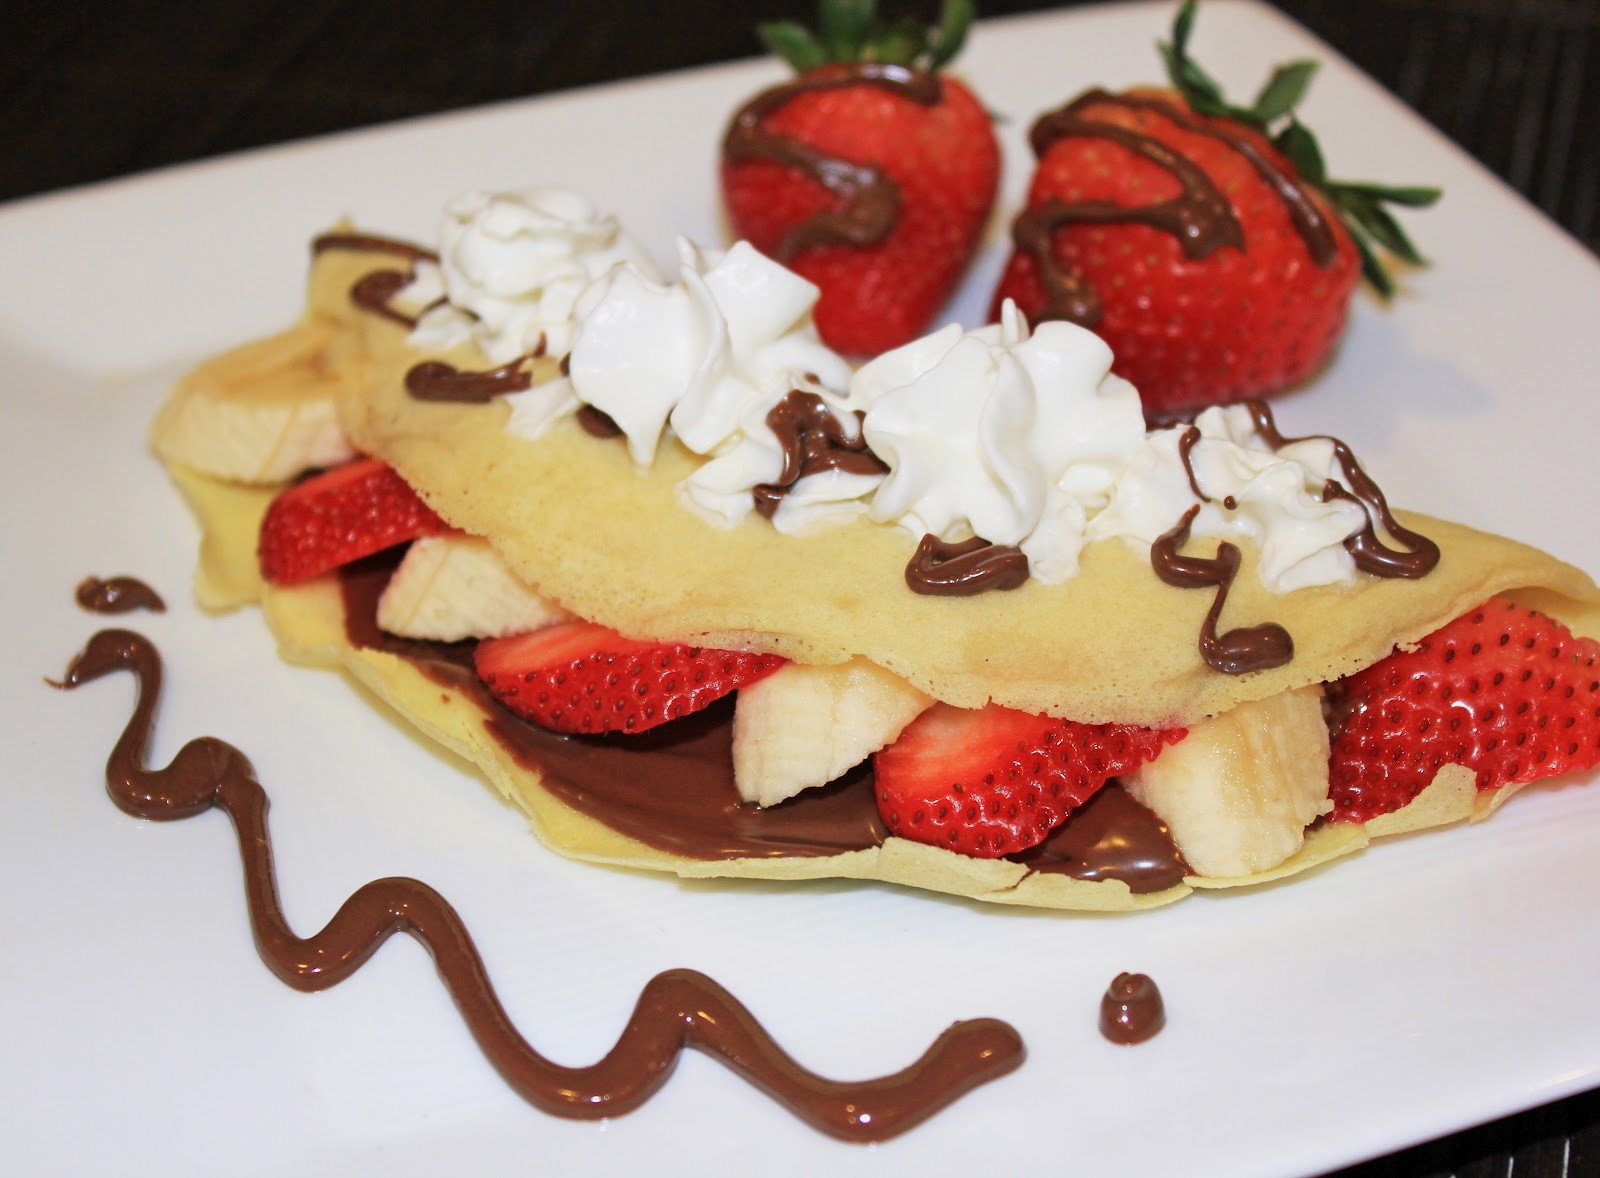 Strawberry, Banana & Nutella crepe | Life At Home